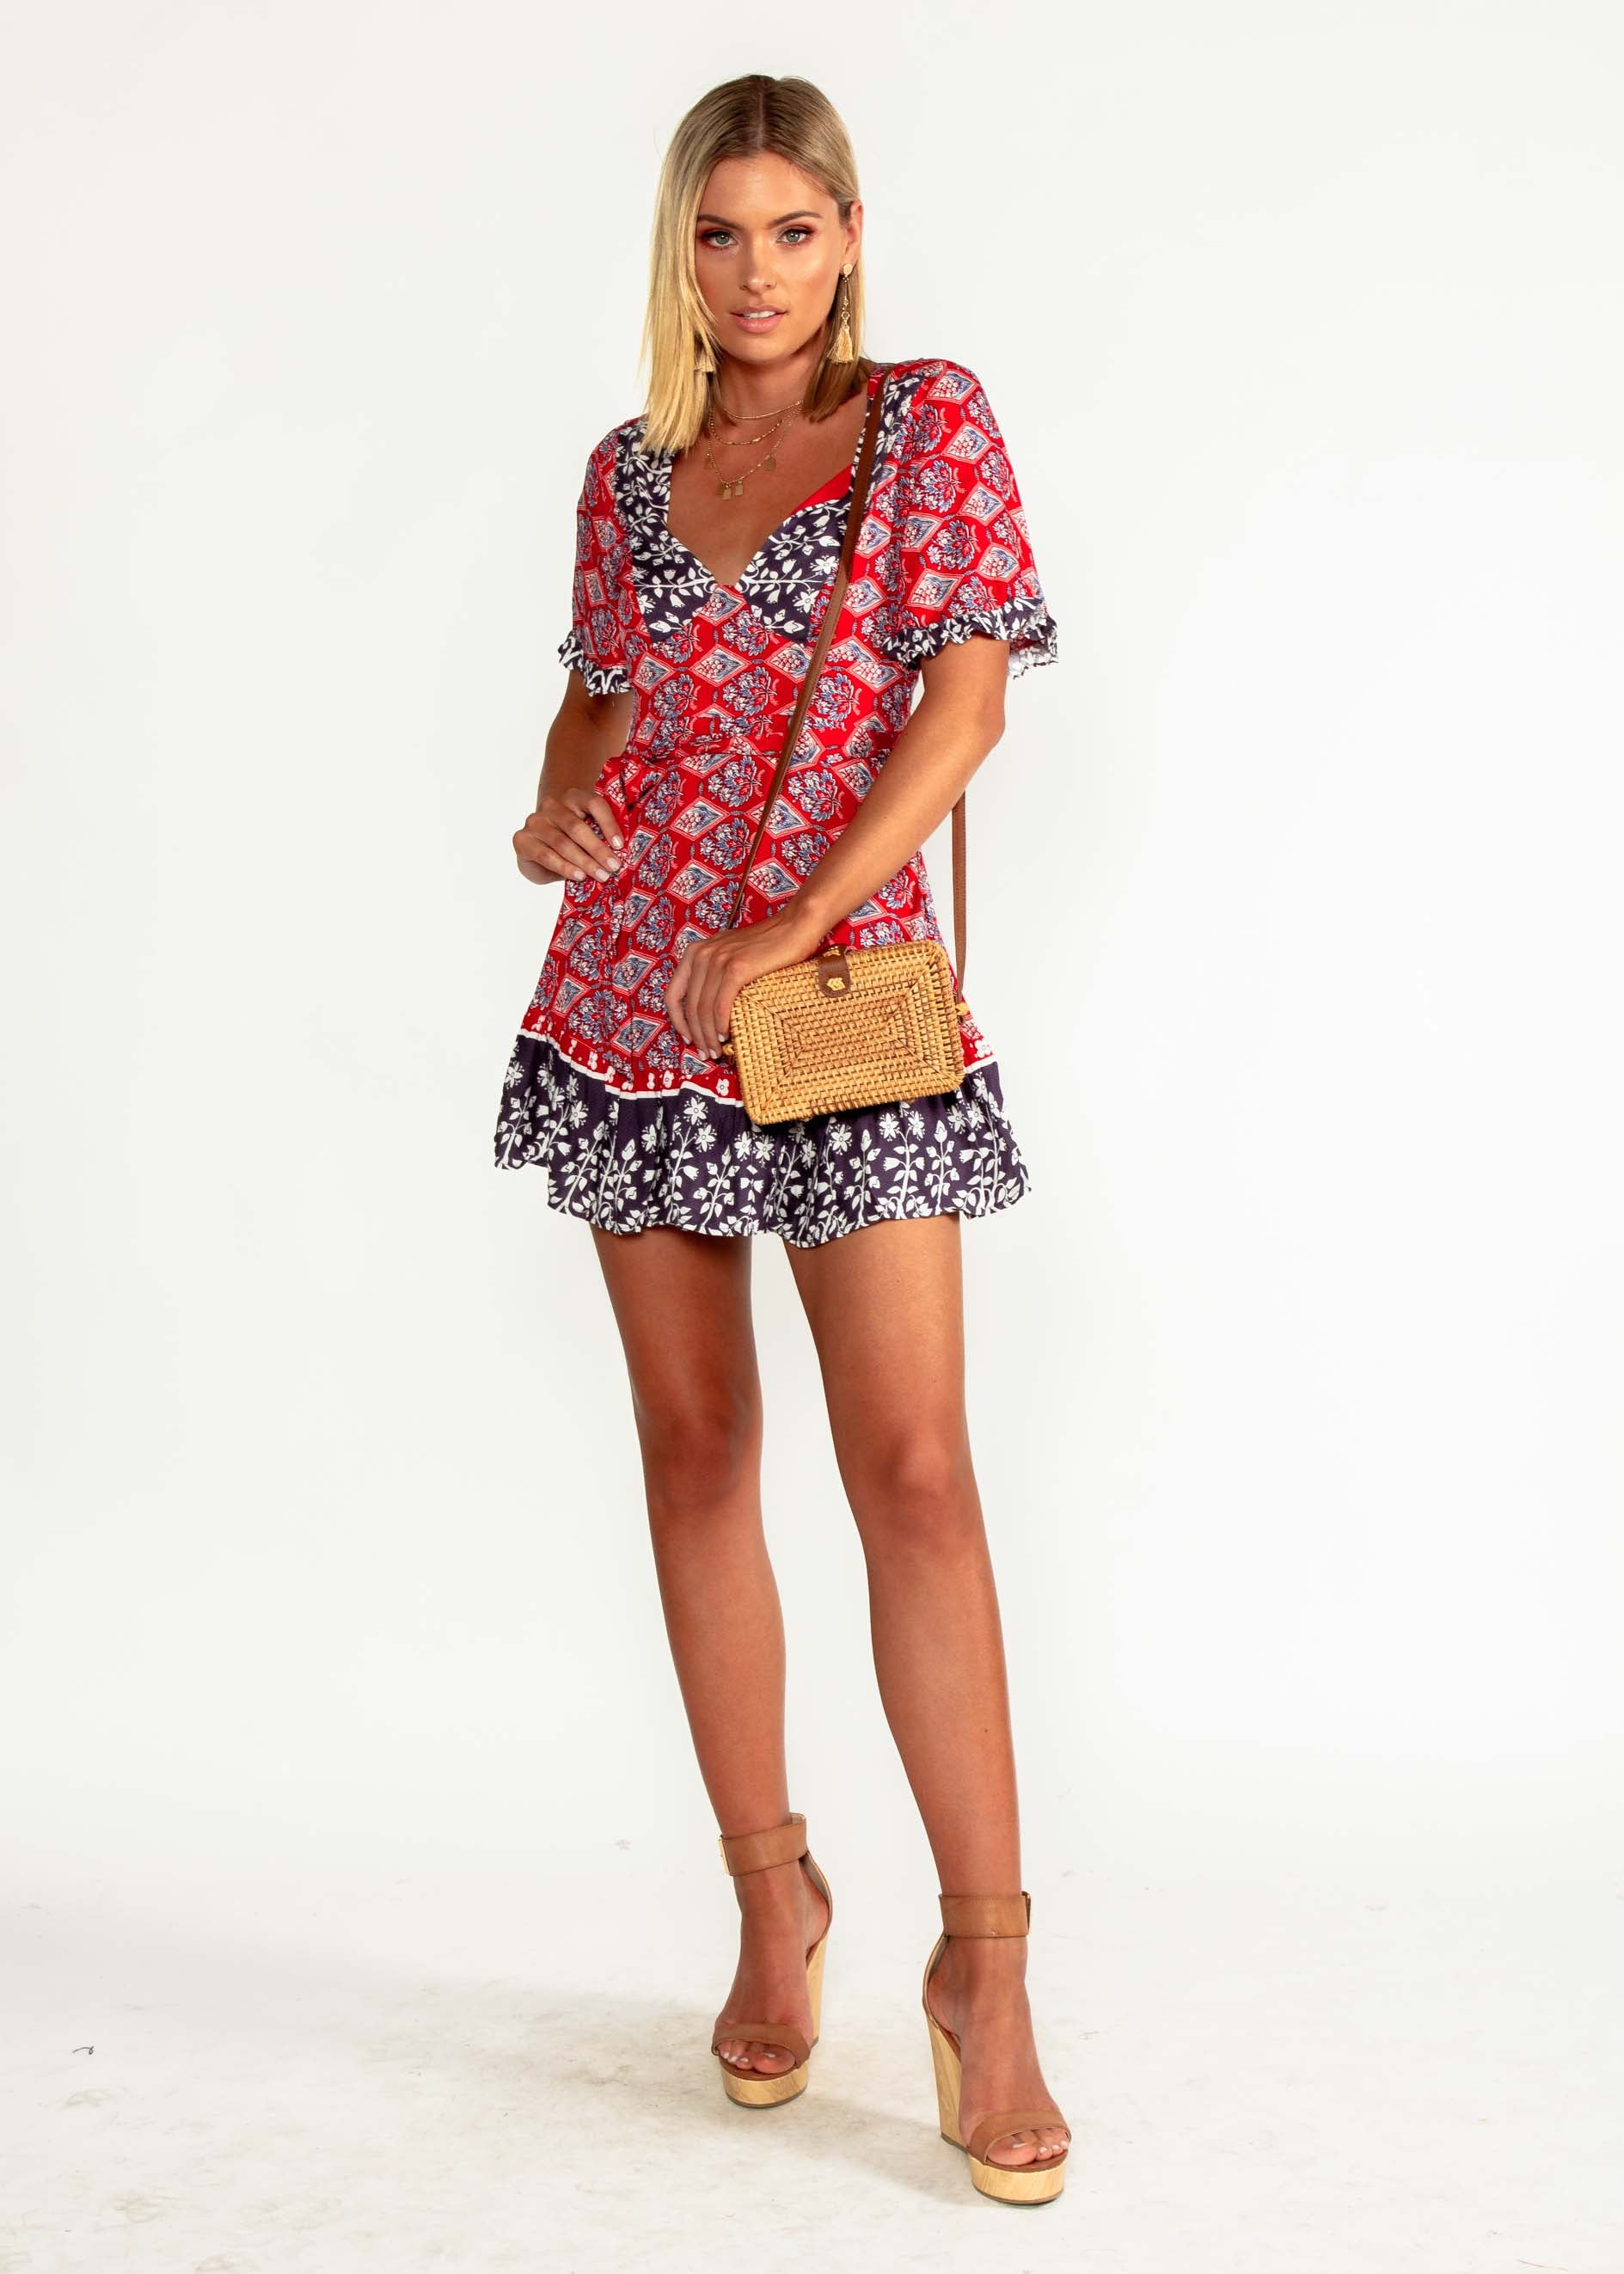 Seraphina Dress w/ Tie - Red Paisley